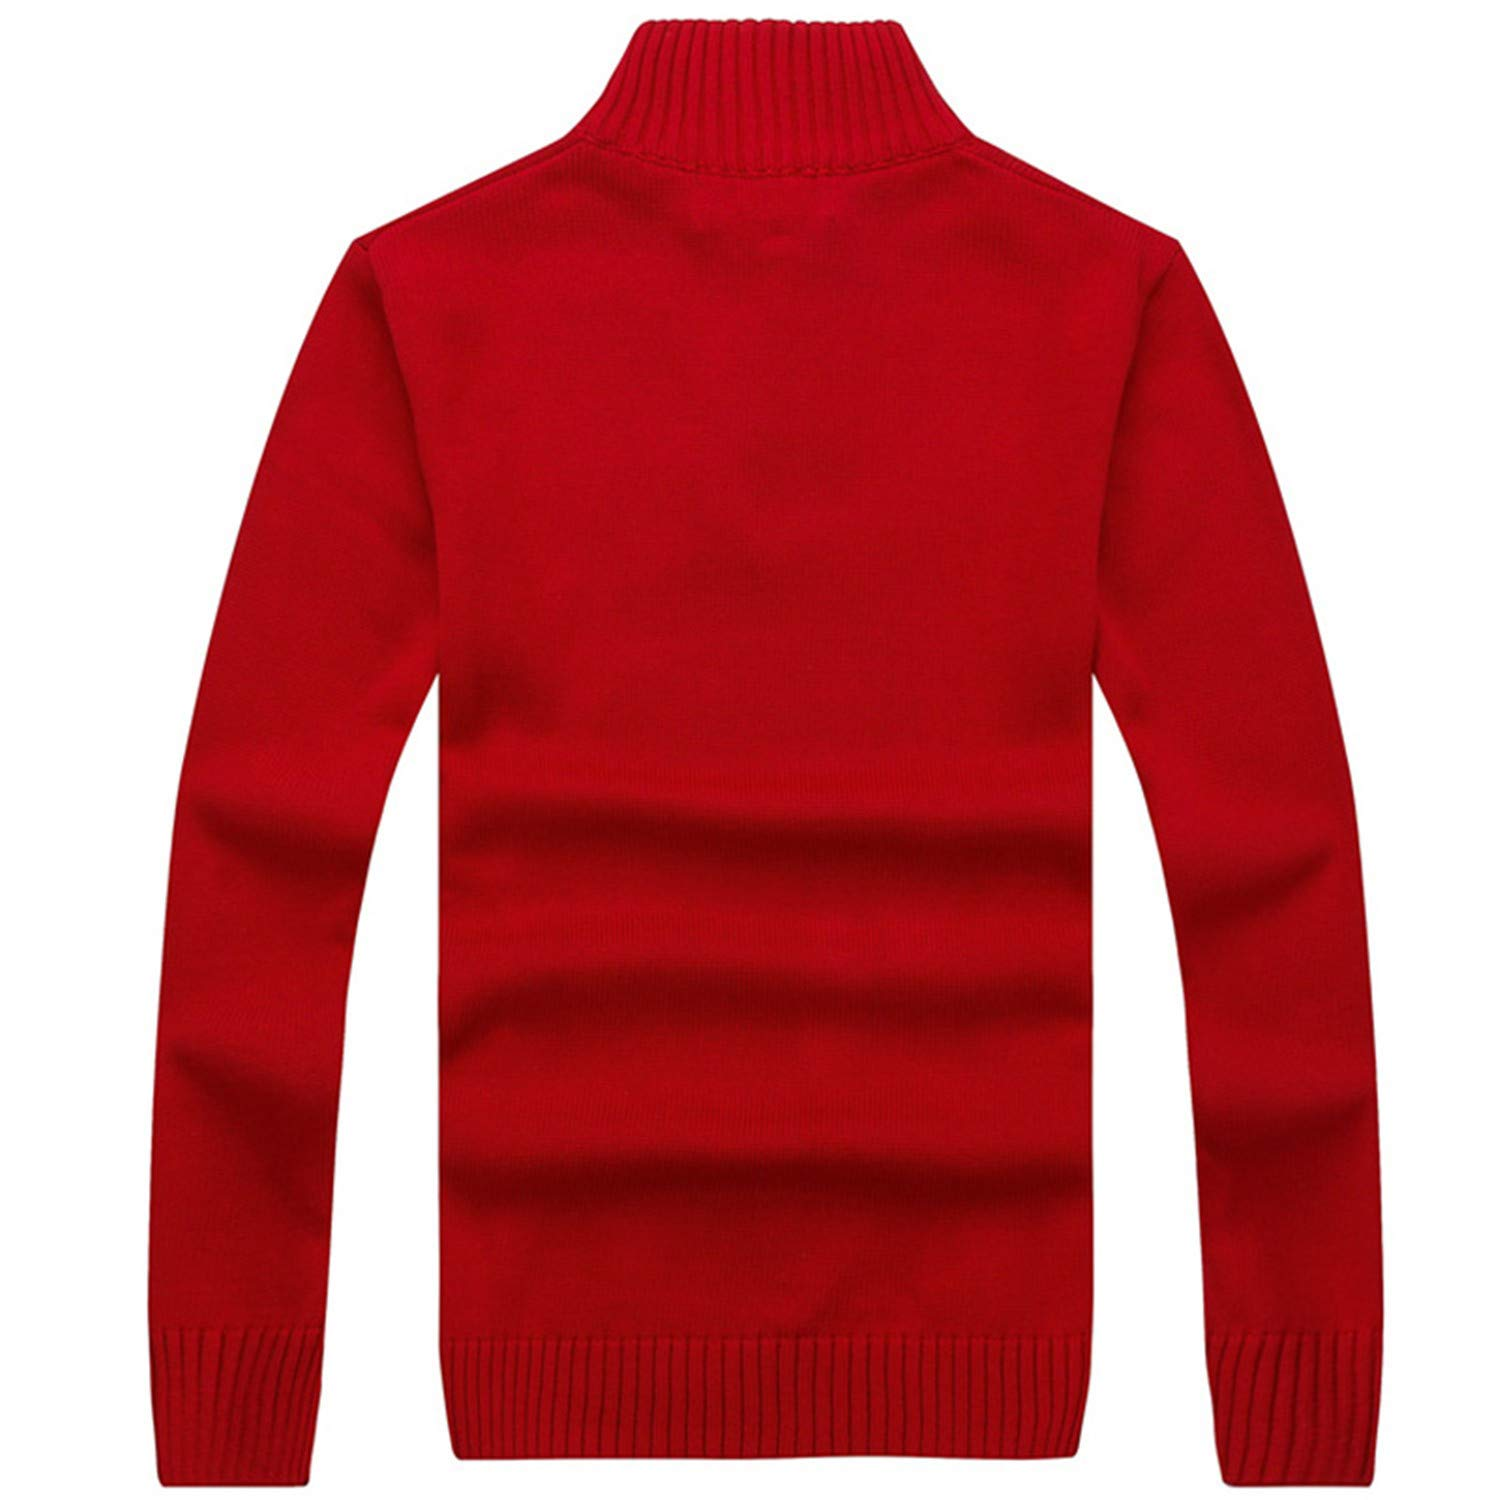 Susie Zechariah New Winter Thick Sweater Male Clothing Fashion Men Zipper Pullover Solid Knitted Jumper